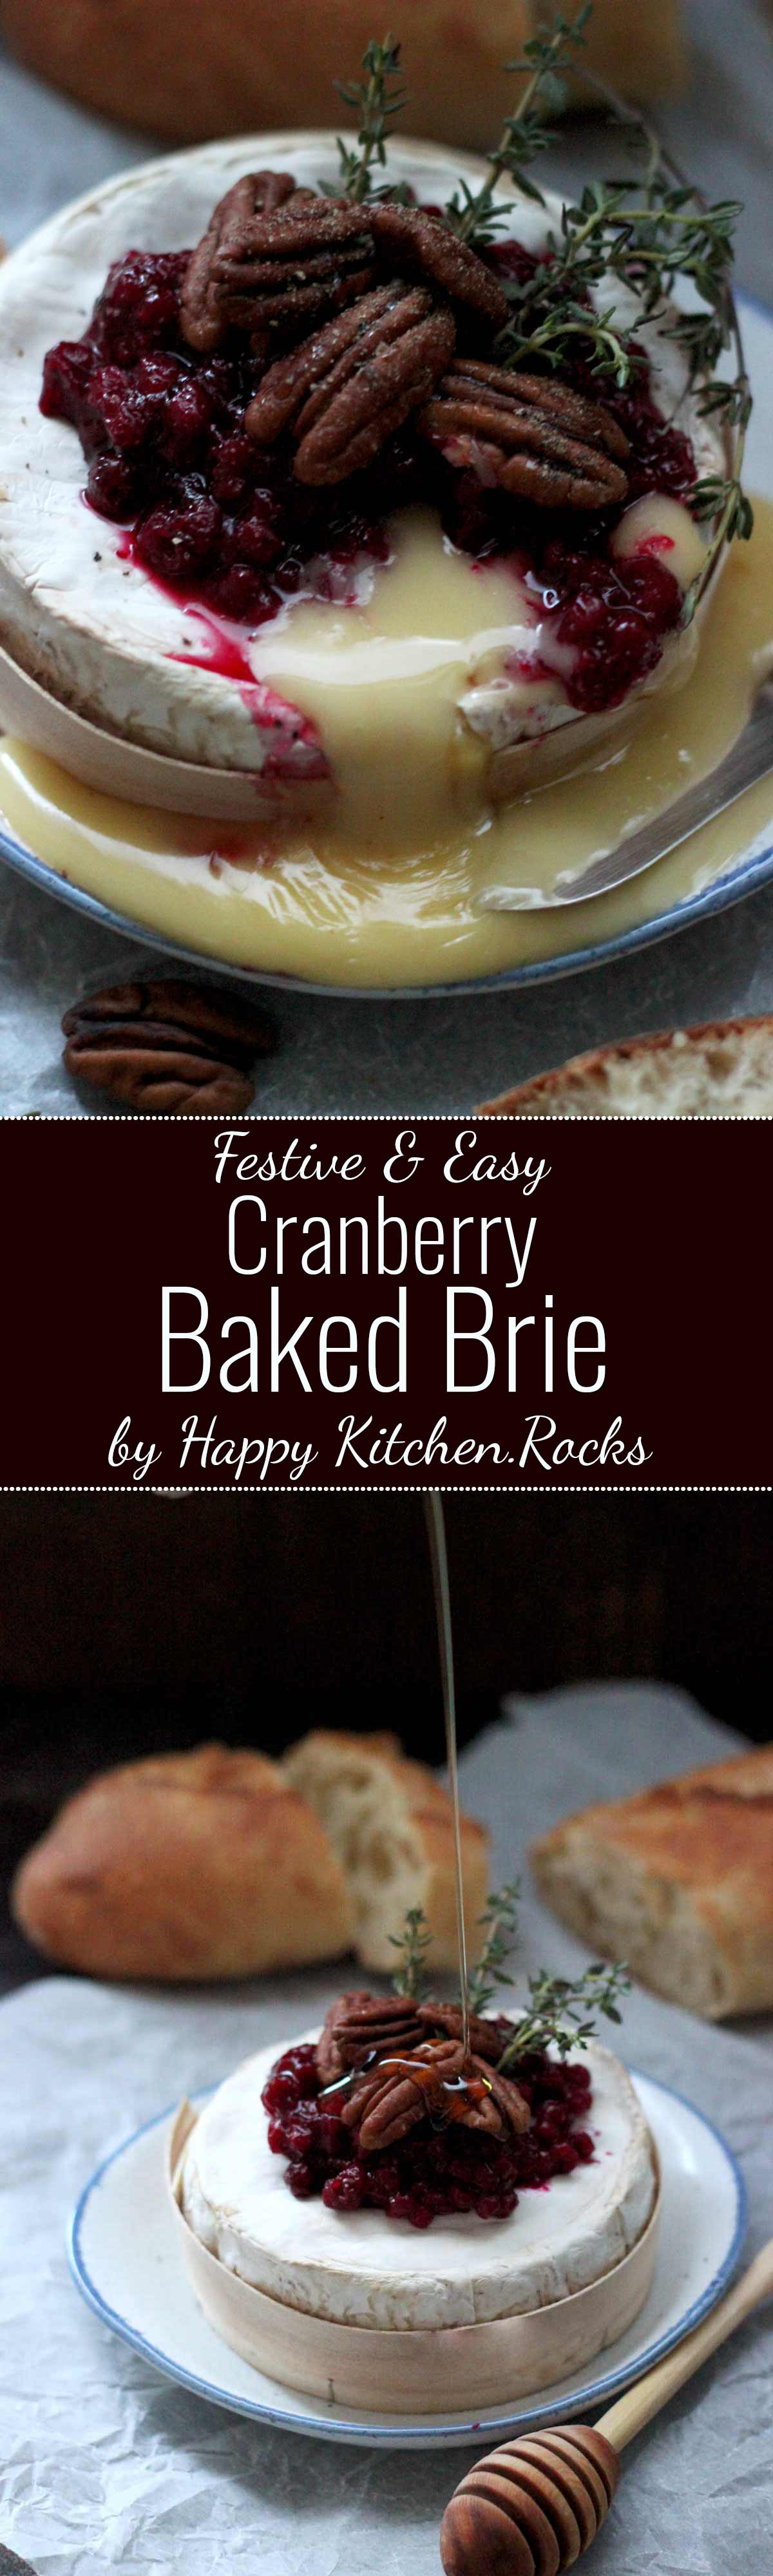 Easy Cranberry Baked Brie with Thyme Super Long Image for Pinterest